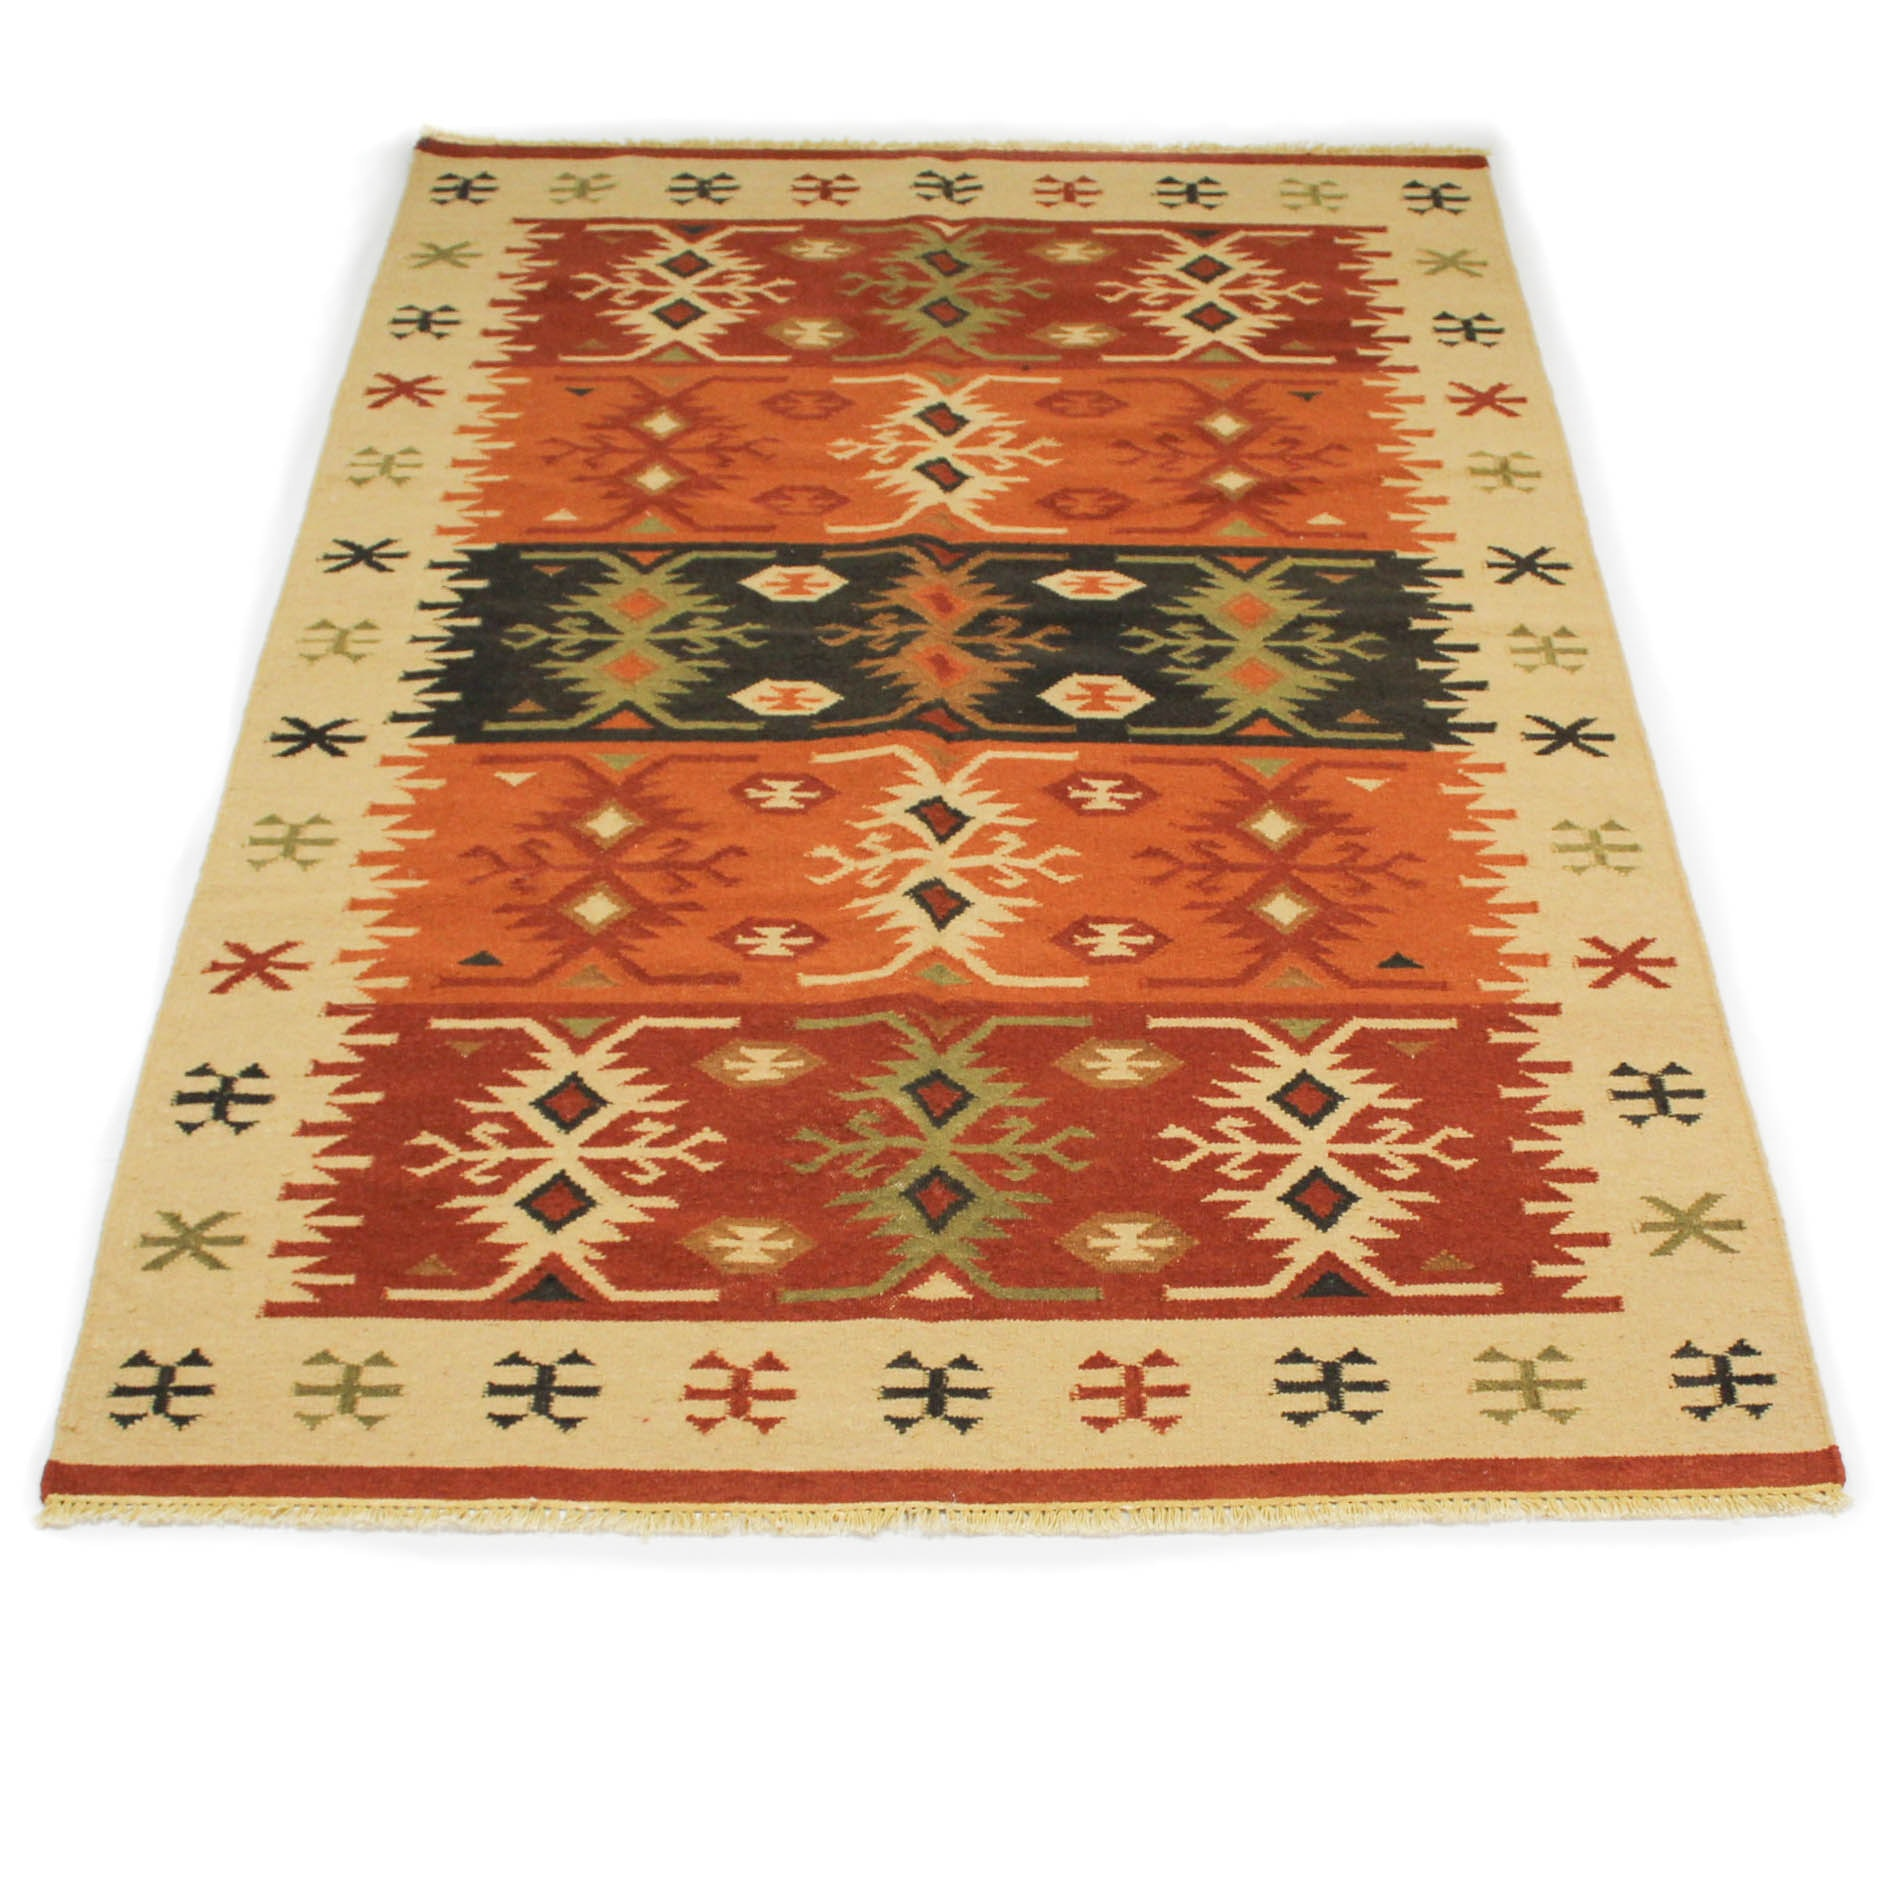 Handwoven Indian Kilim Area Rug